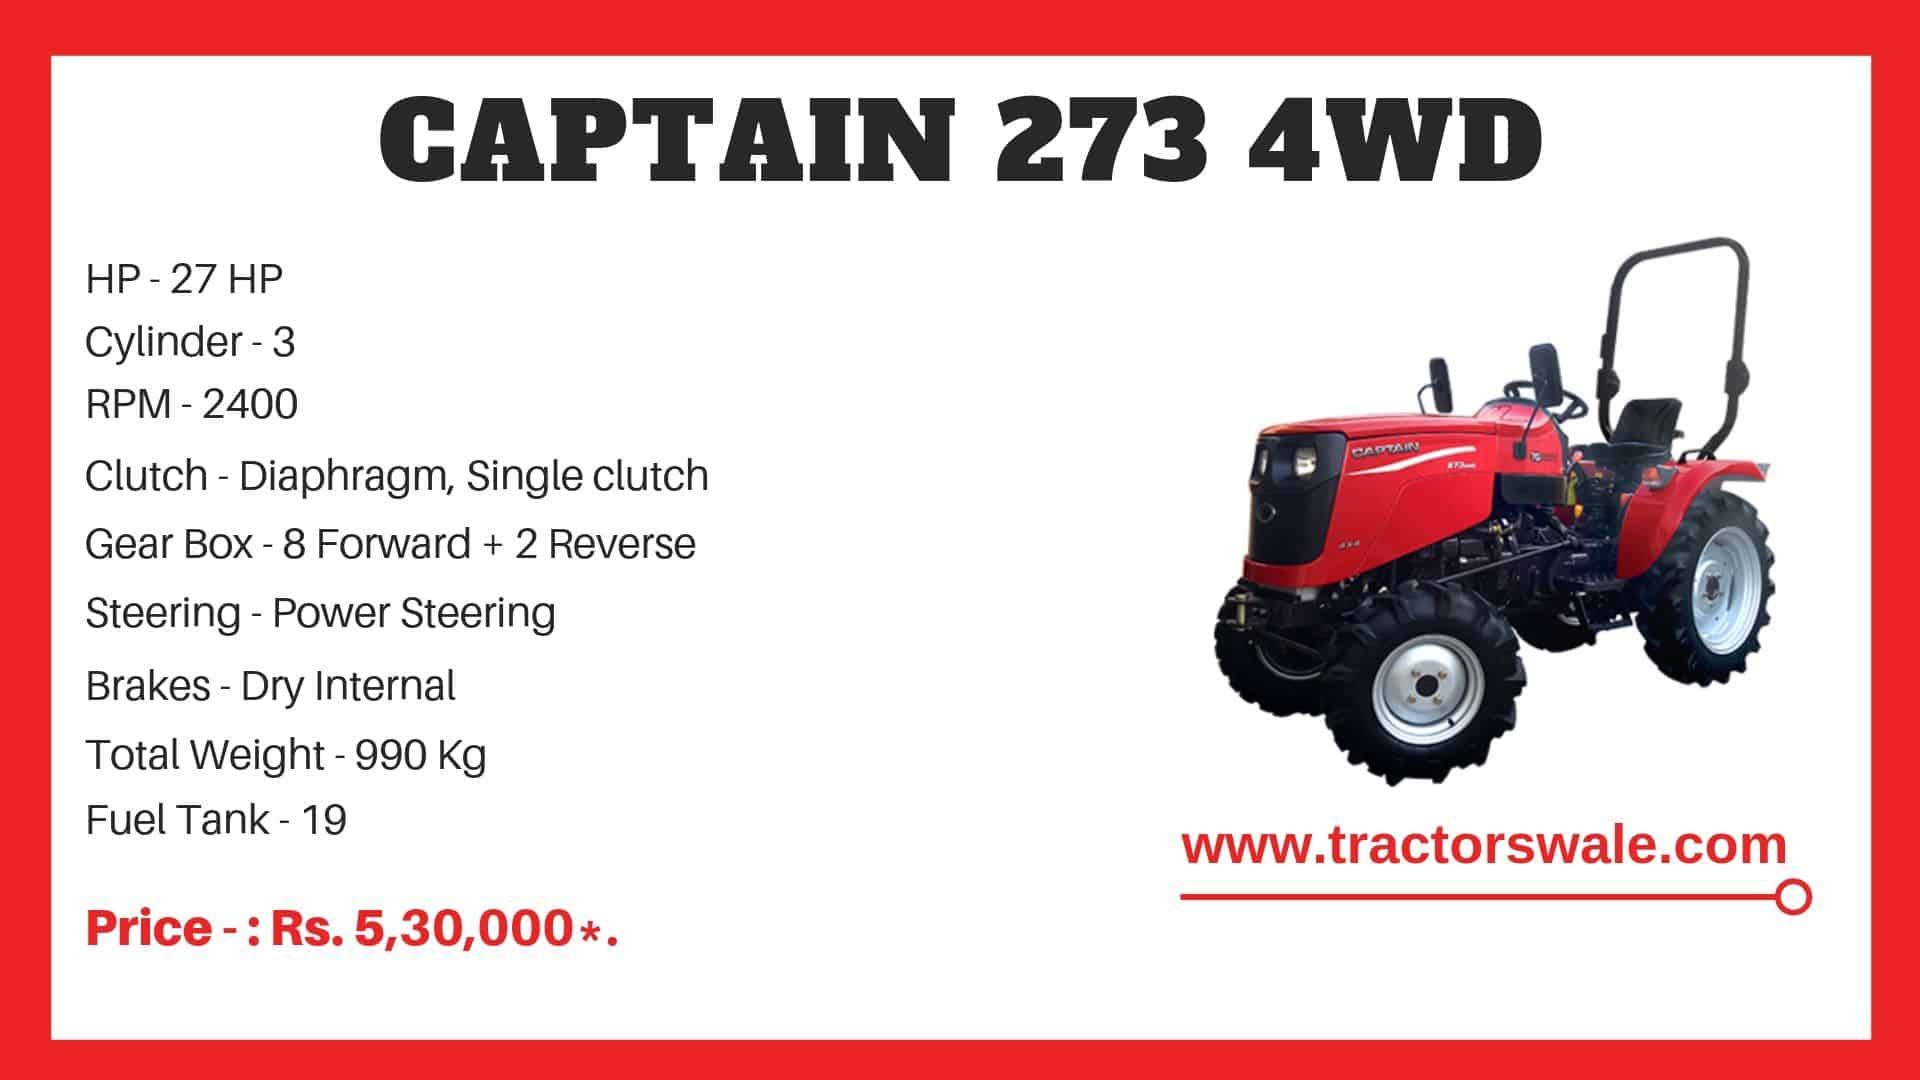 Specification of Captain 273 4WD